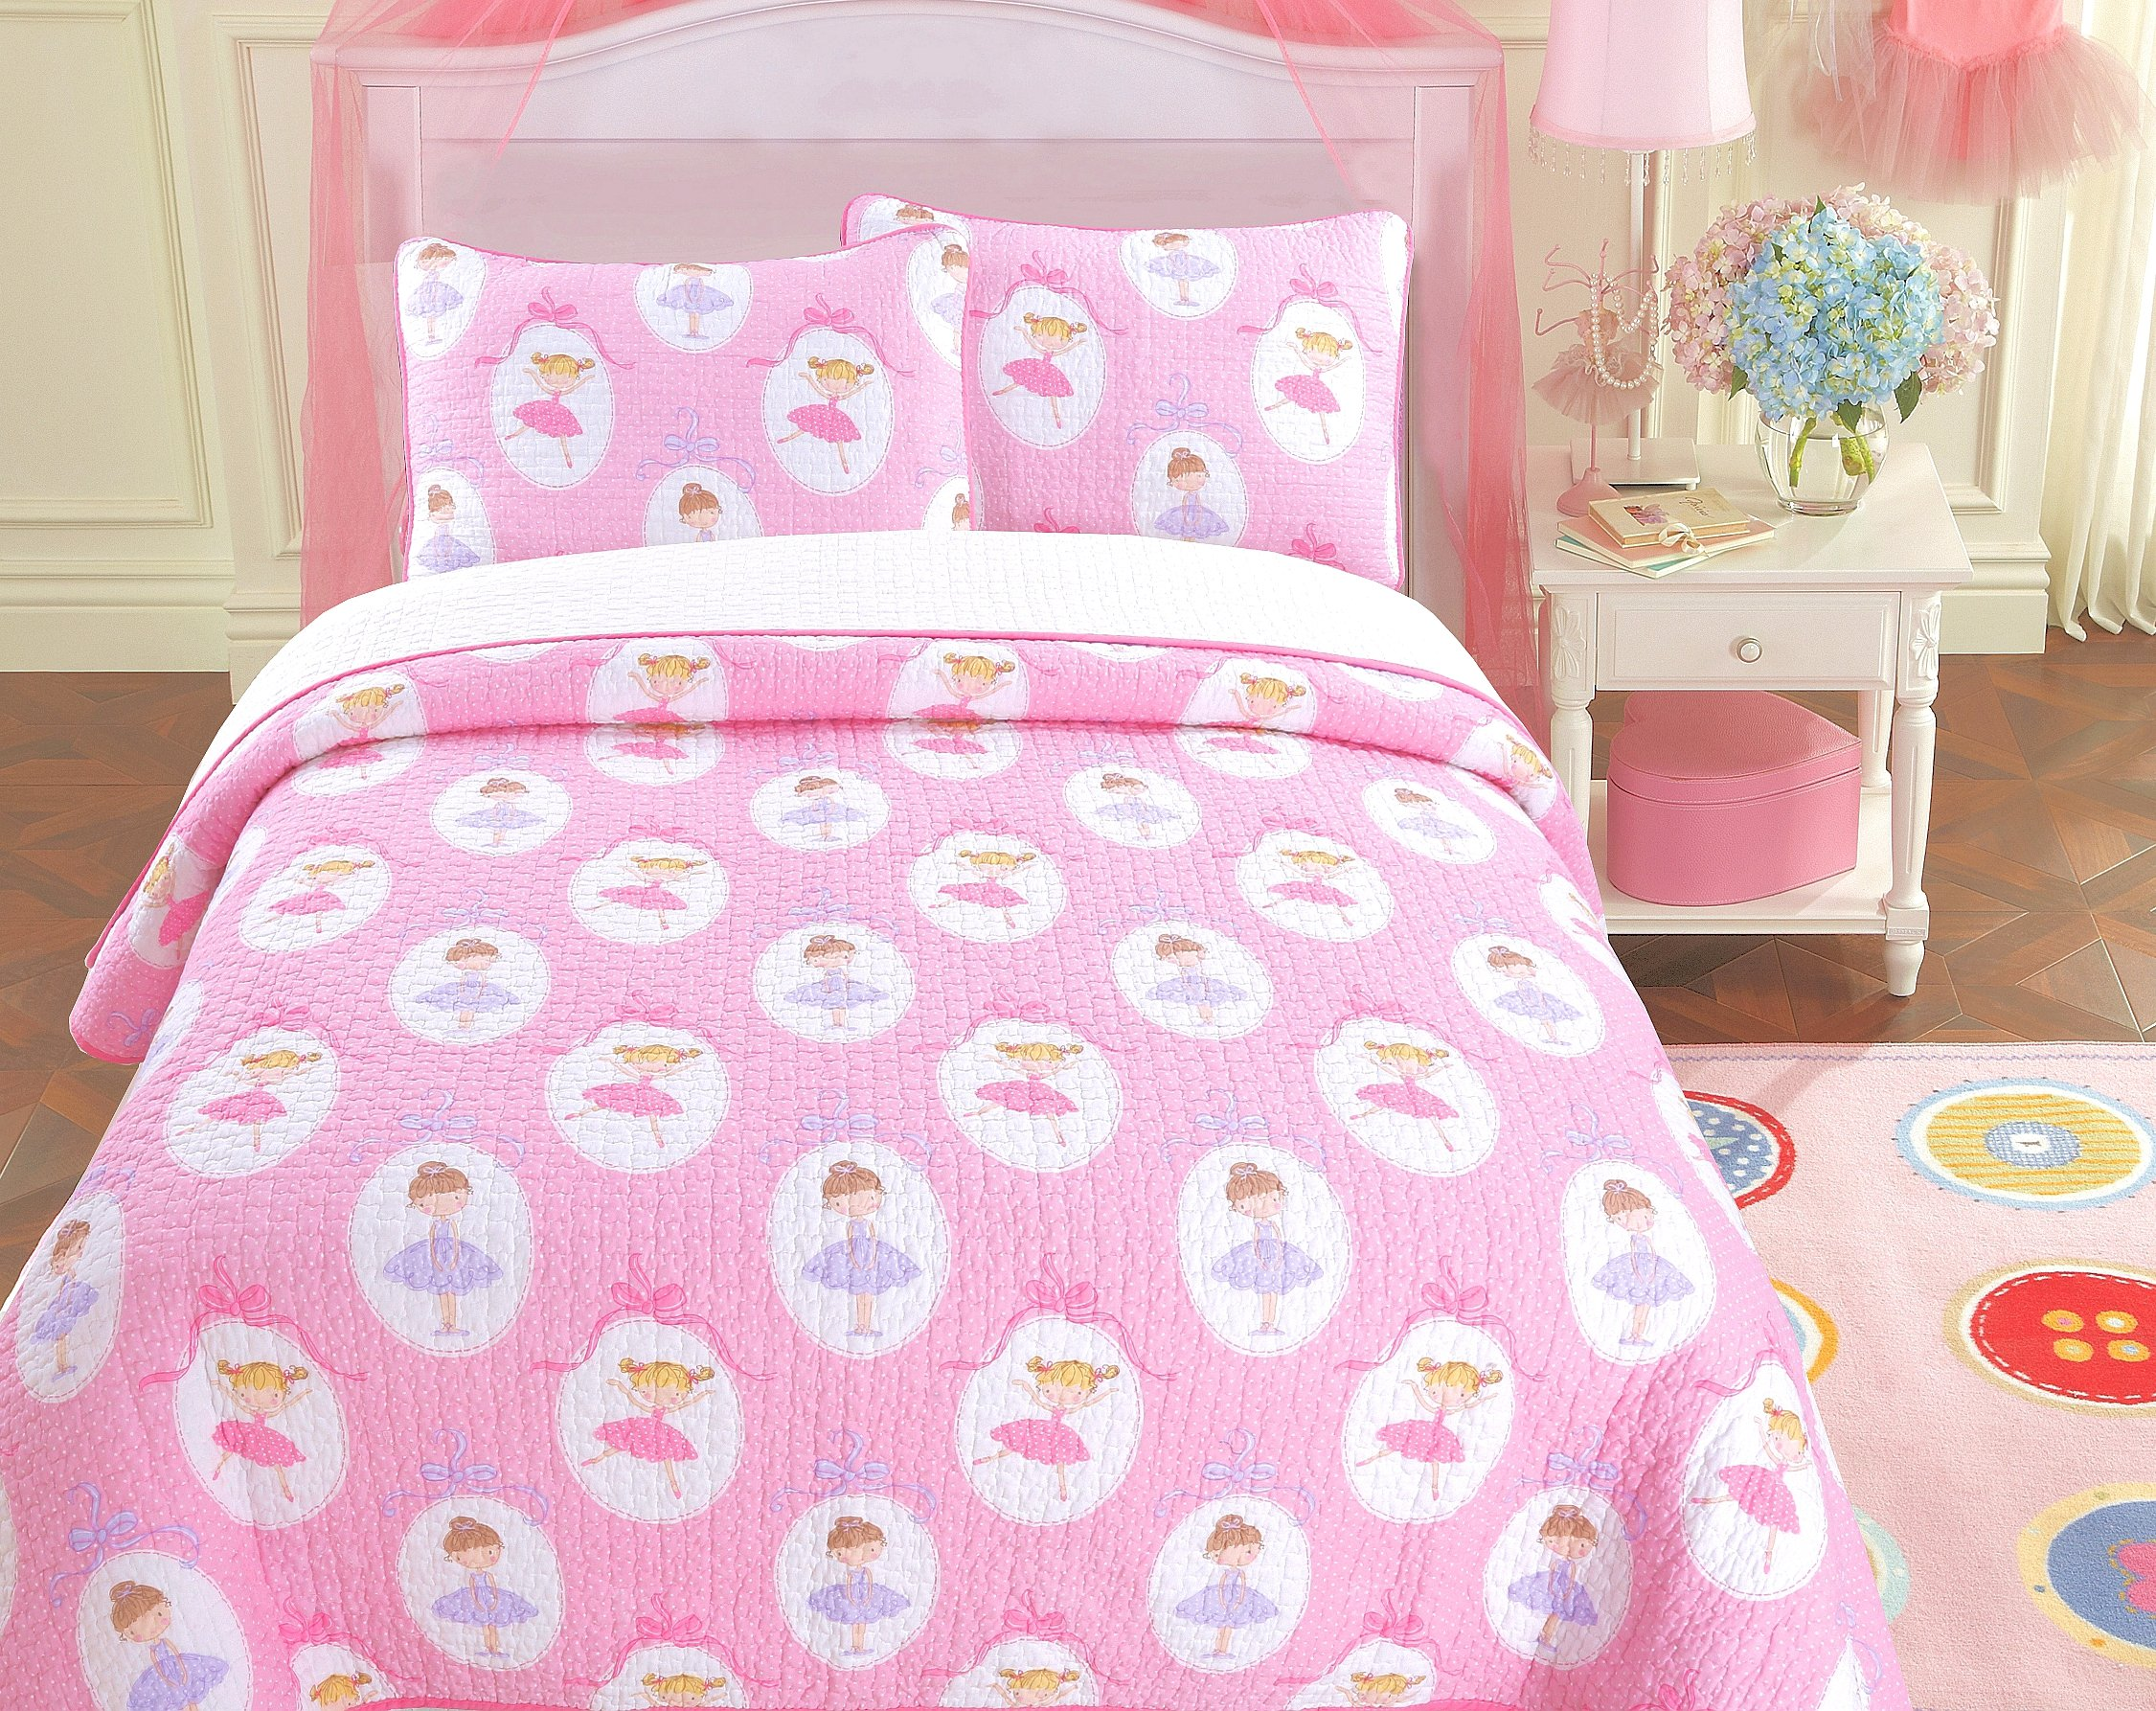 Cozy Line Home Fashions Ballerina Dance Princess Bedding Quilt Set, Pink Orchid Light Purple 100% Cotton Bedspread for Kids Girl (Pink Print, Twin - 2 Piece)